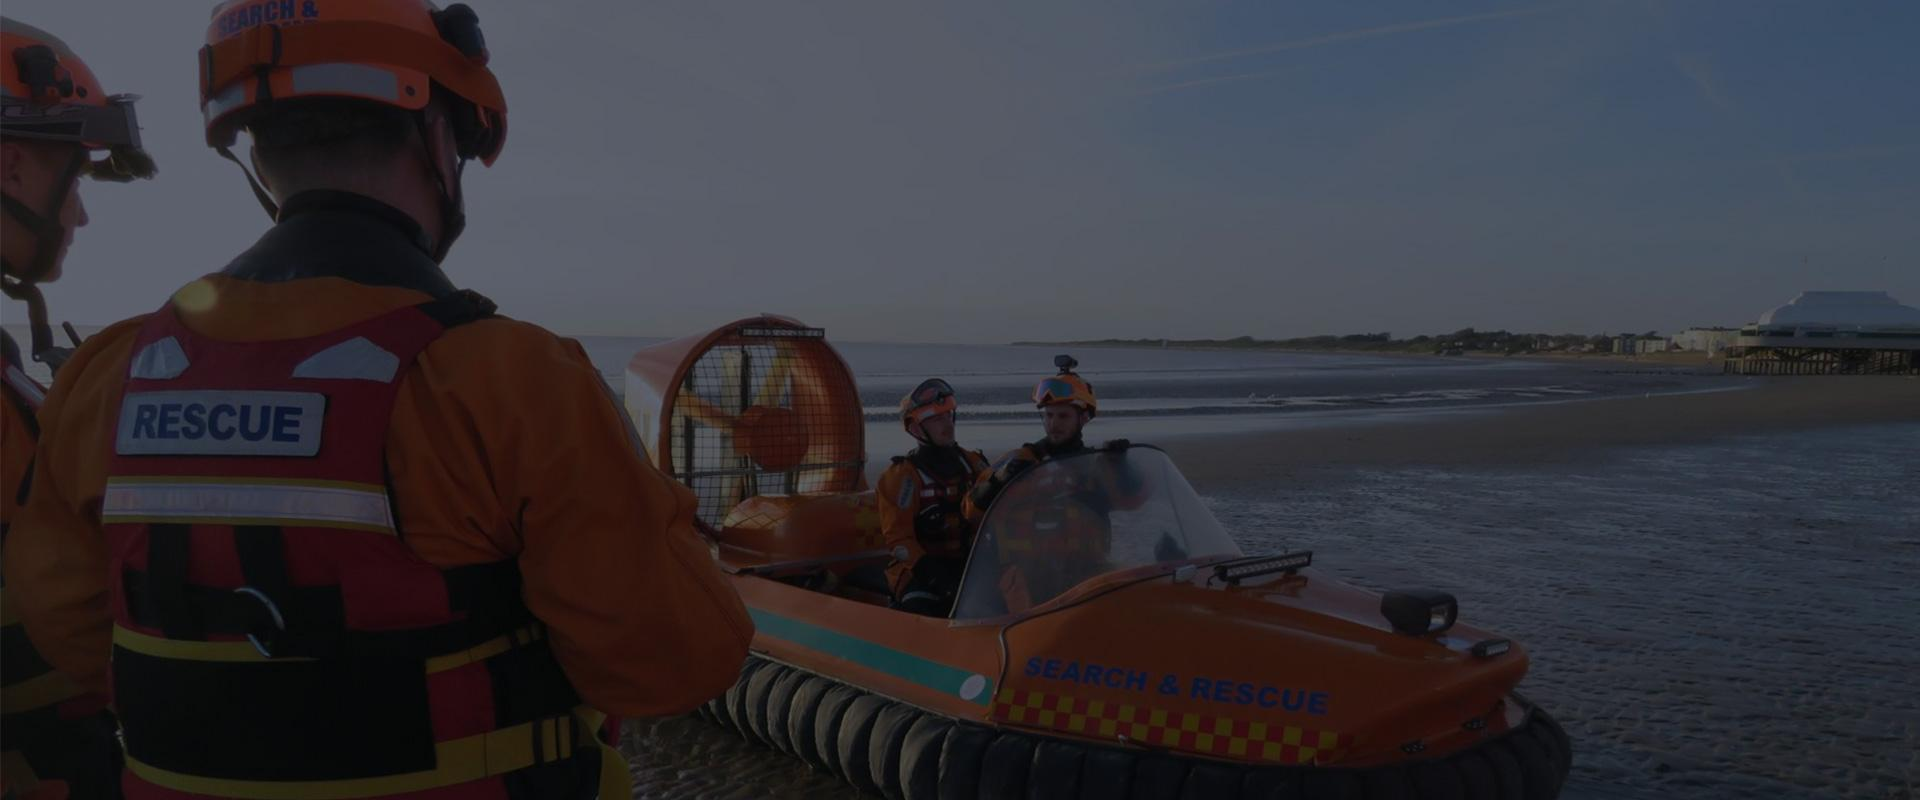 Delivering a life saving rescue service to Burnham-on-Seas coast